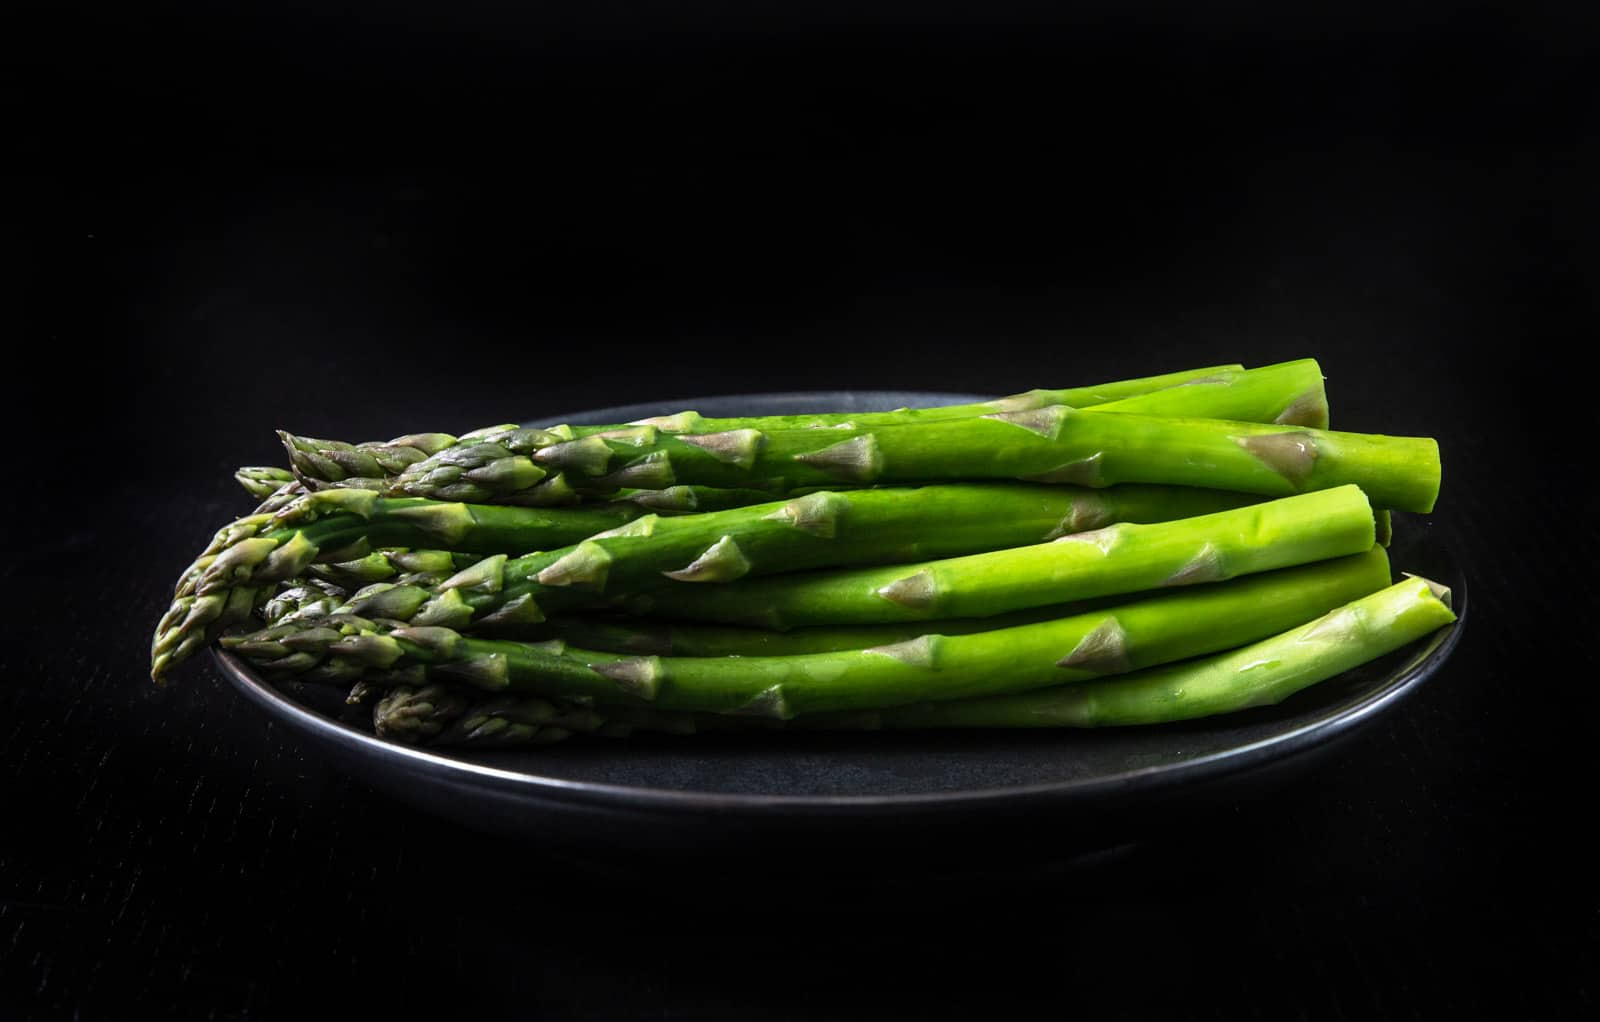 Instant Pot Asparagus Tested By Amy Jacky